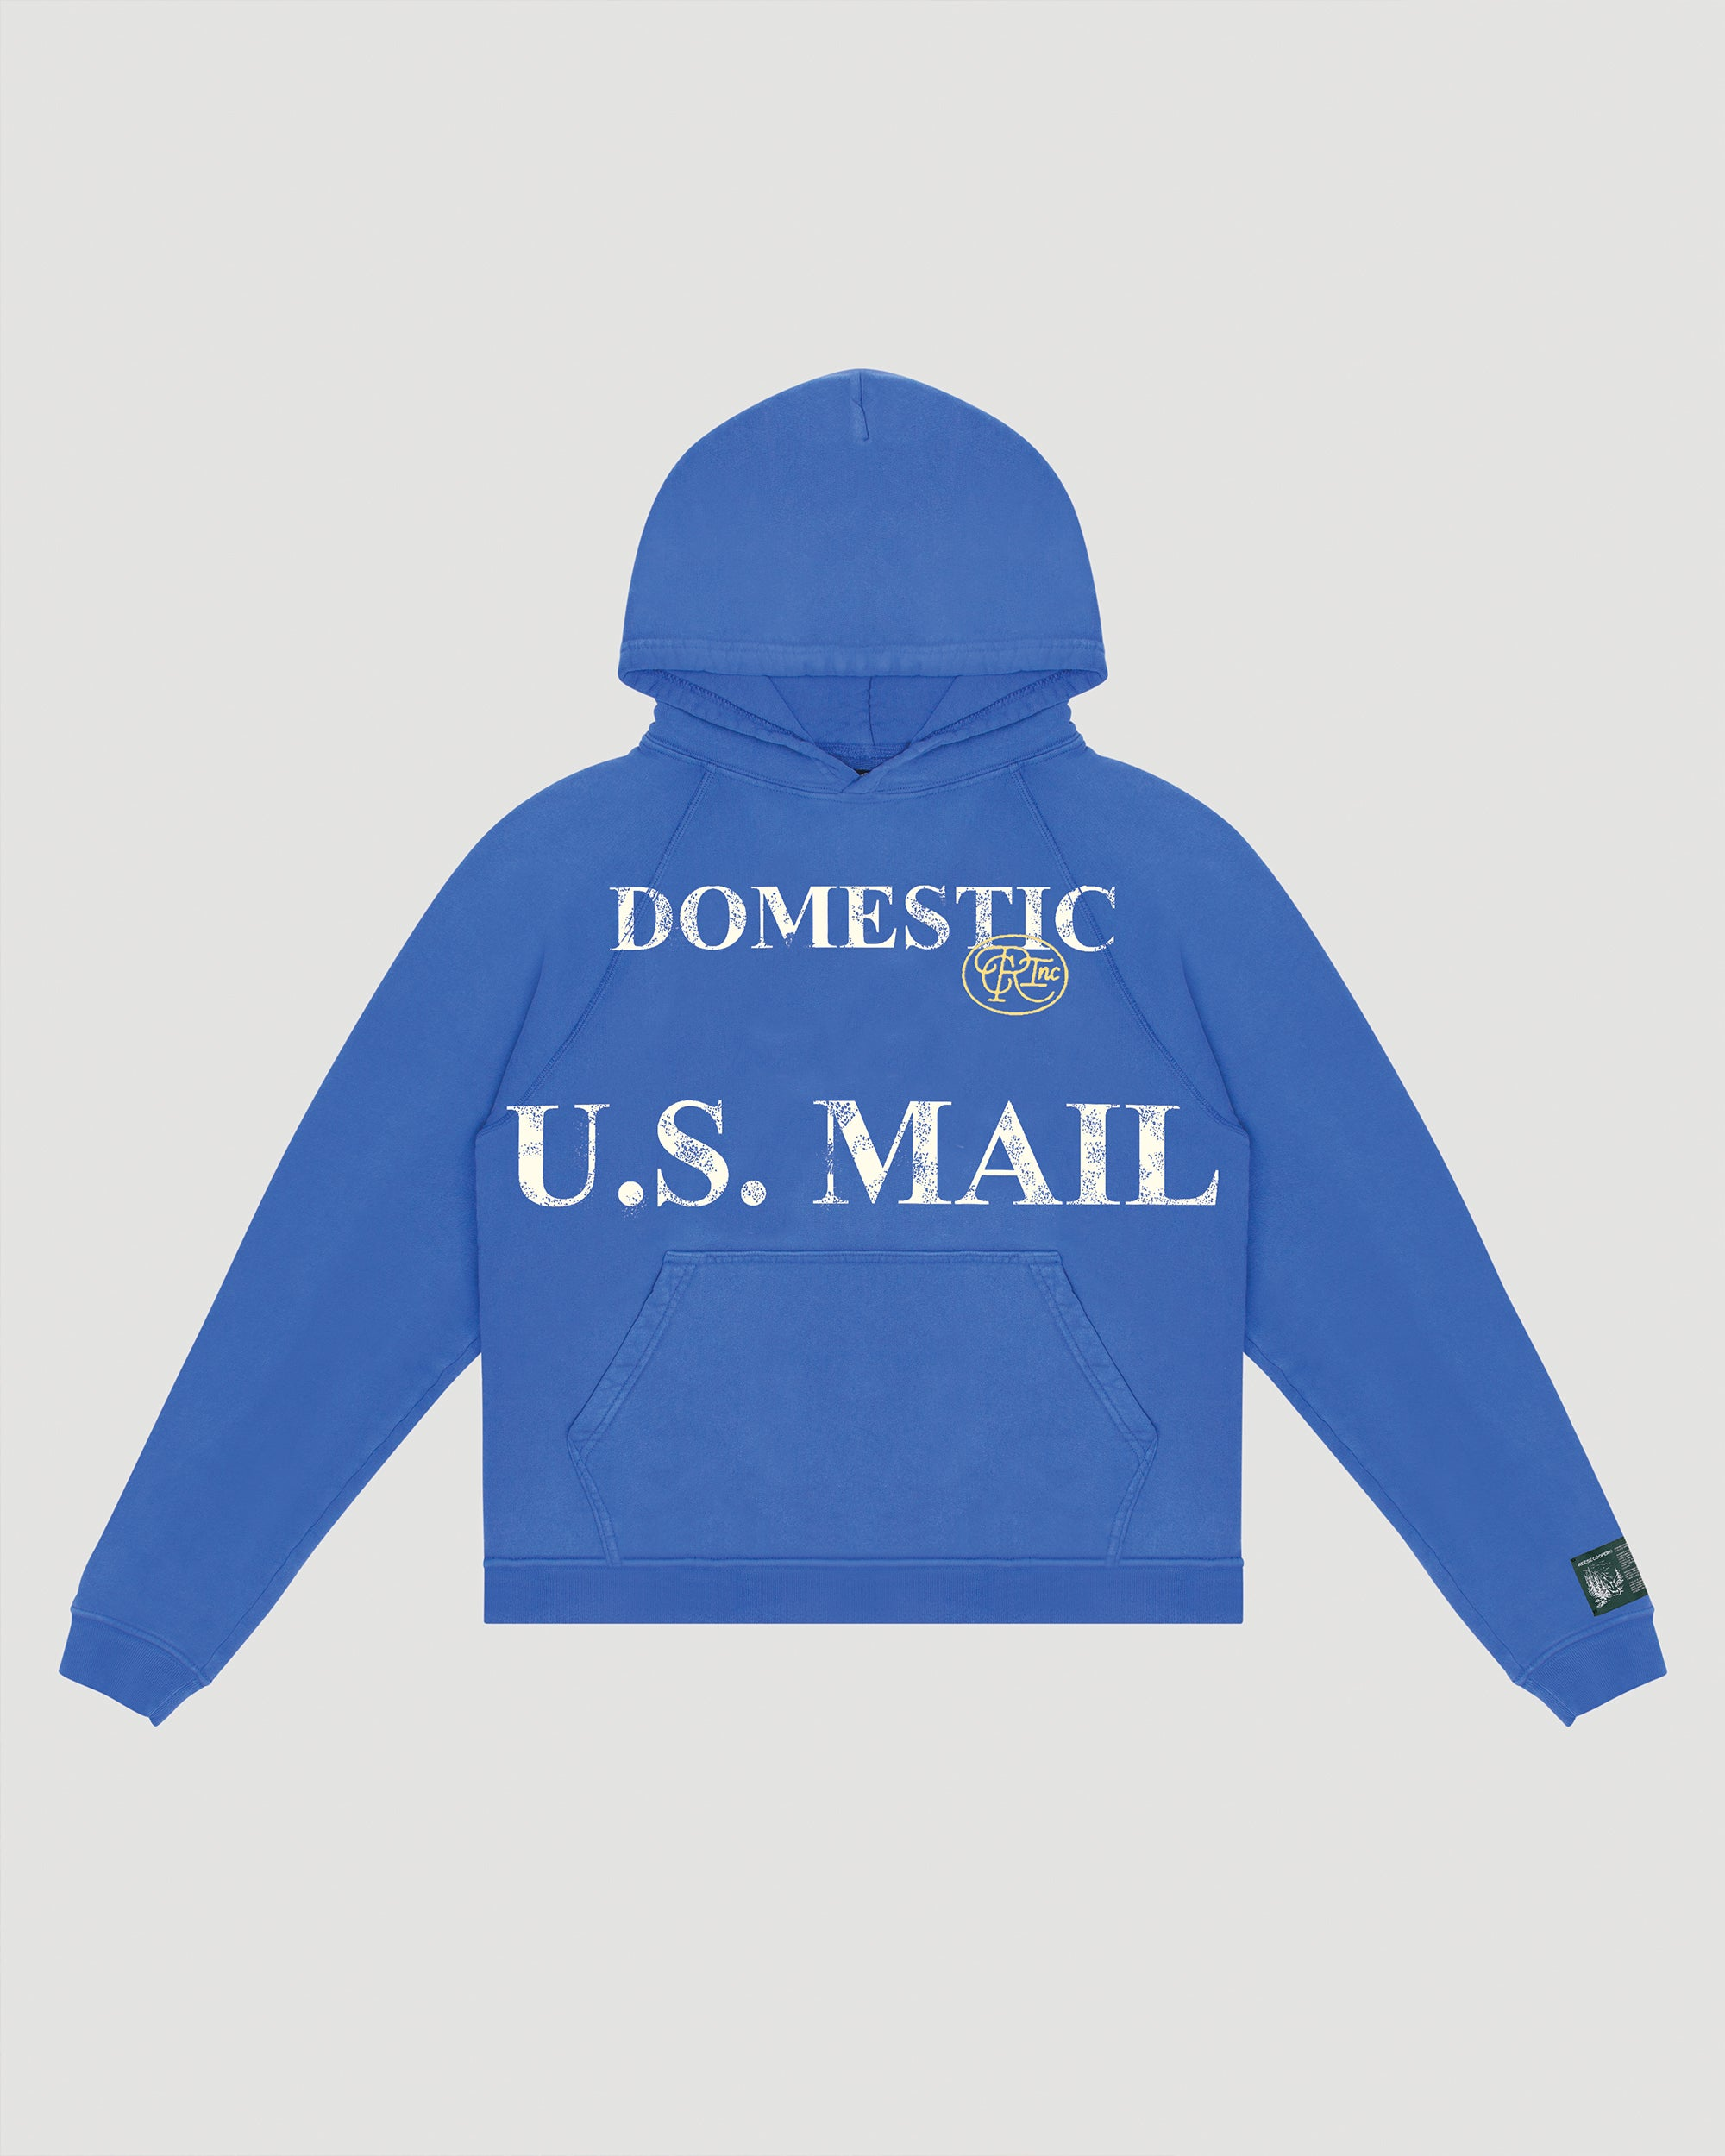 Domestic Mail Aged Hooded Sweatshirt in Blue